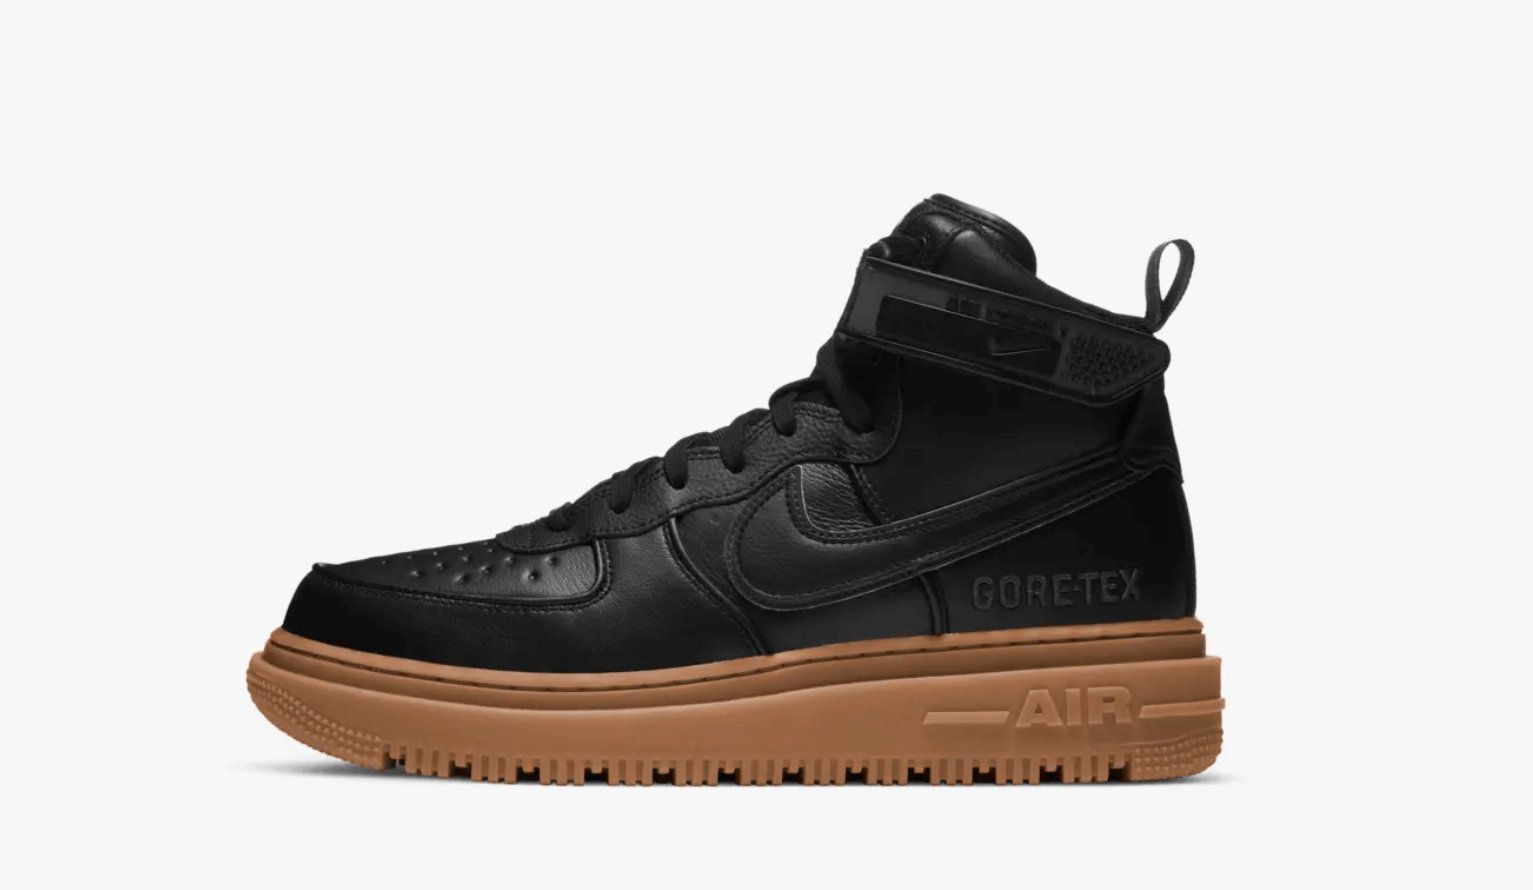 Nike Air Force 1 GORE-TEXT Boot Anthracite